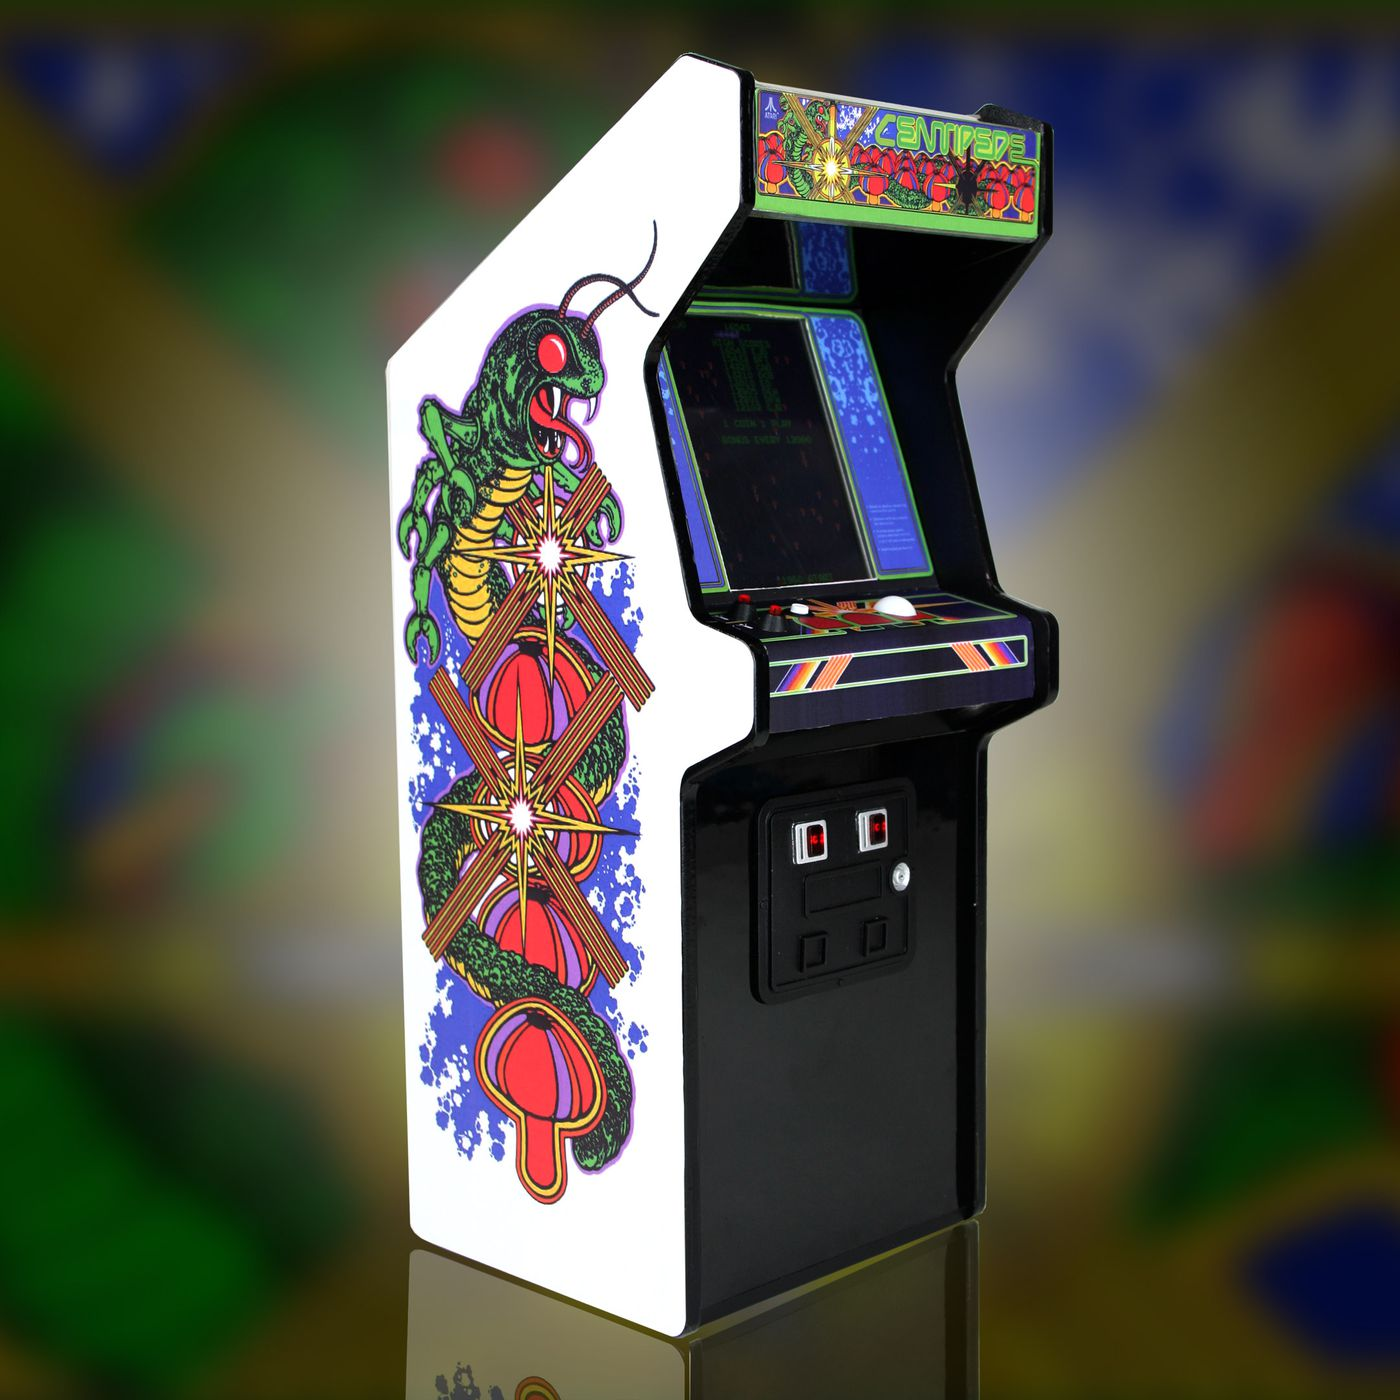 Miniature Collectible Arcade Cabinets Are Coming Starting With Centipede Polygon